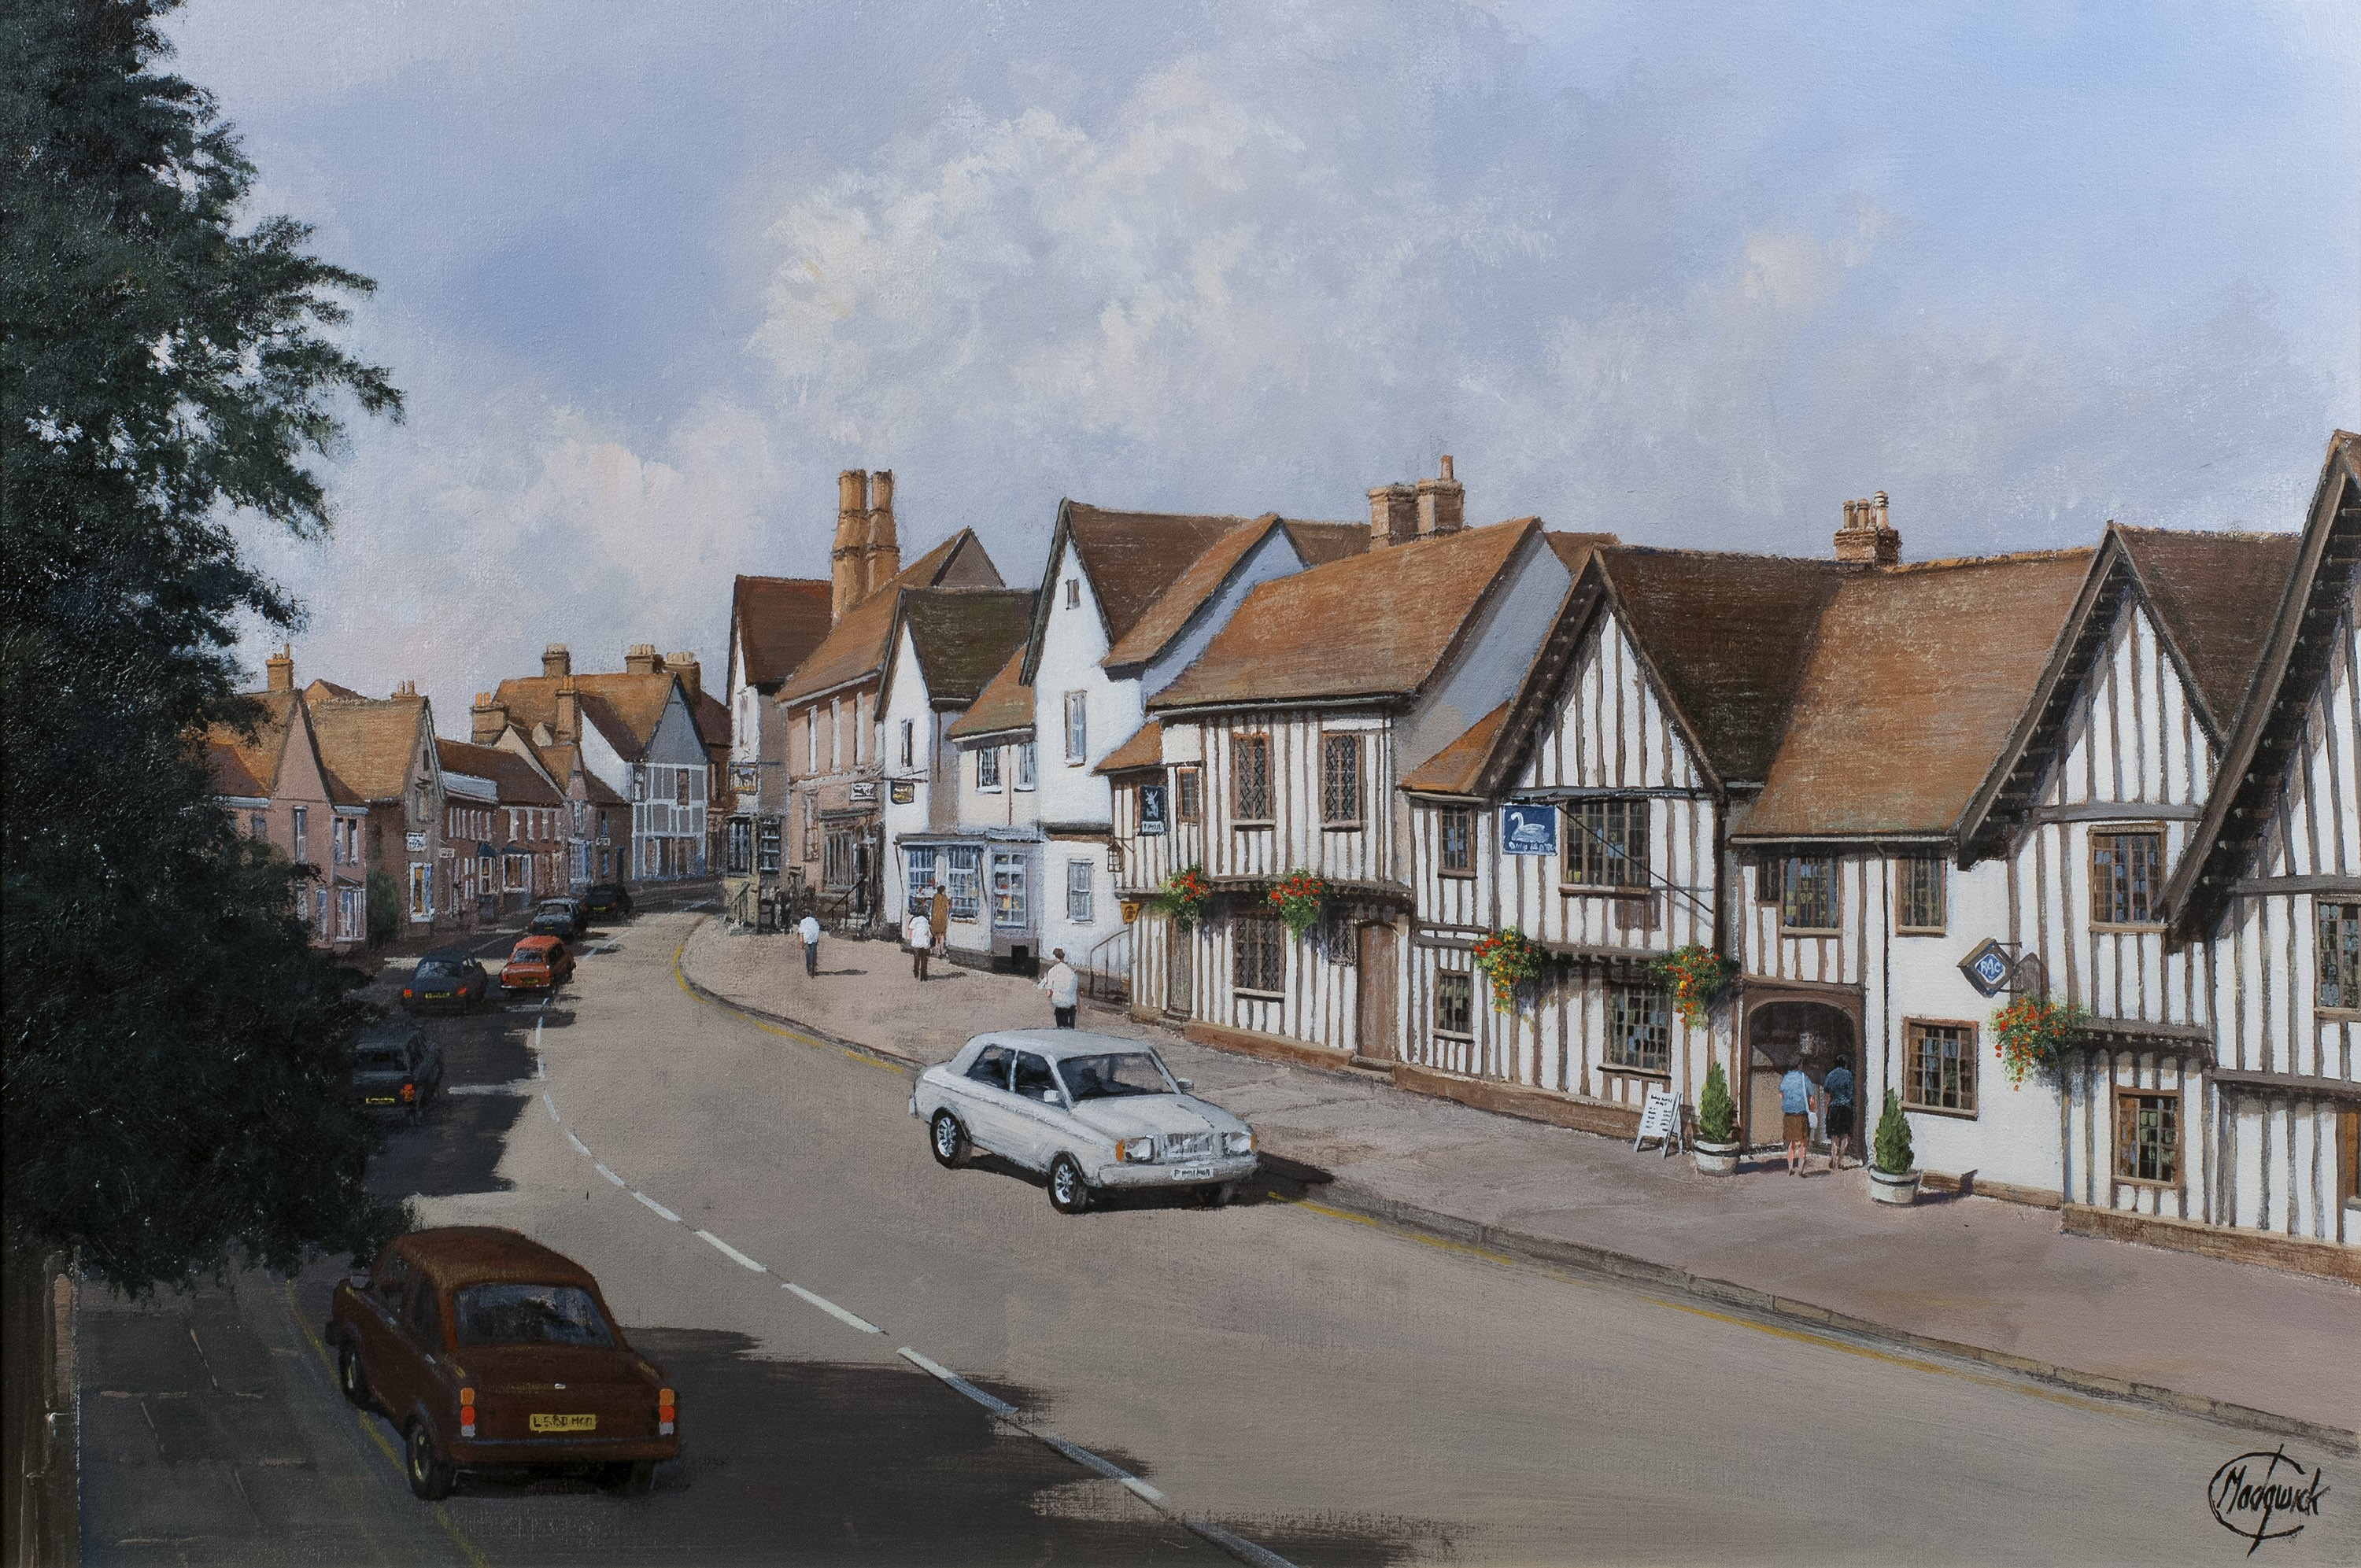 The High Street, Lavenham, Suffolk - SOLD